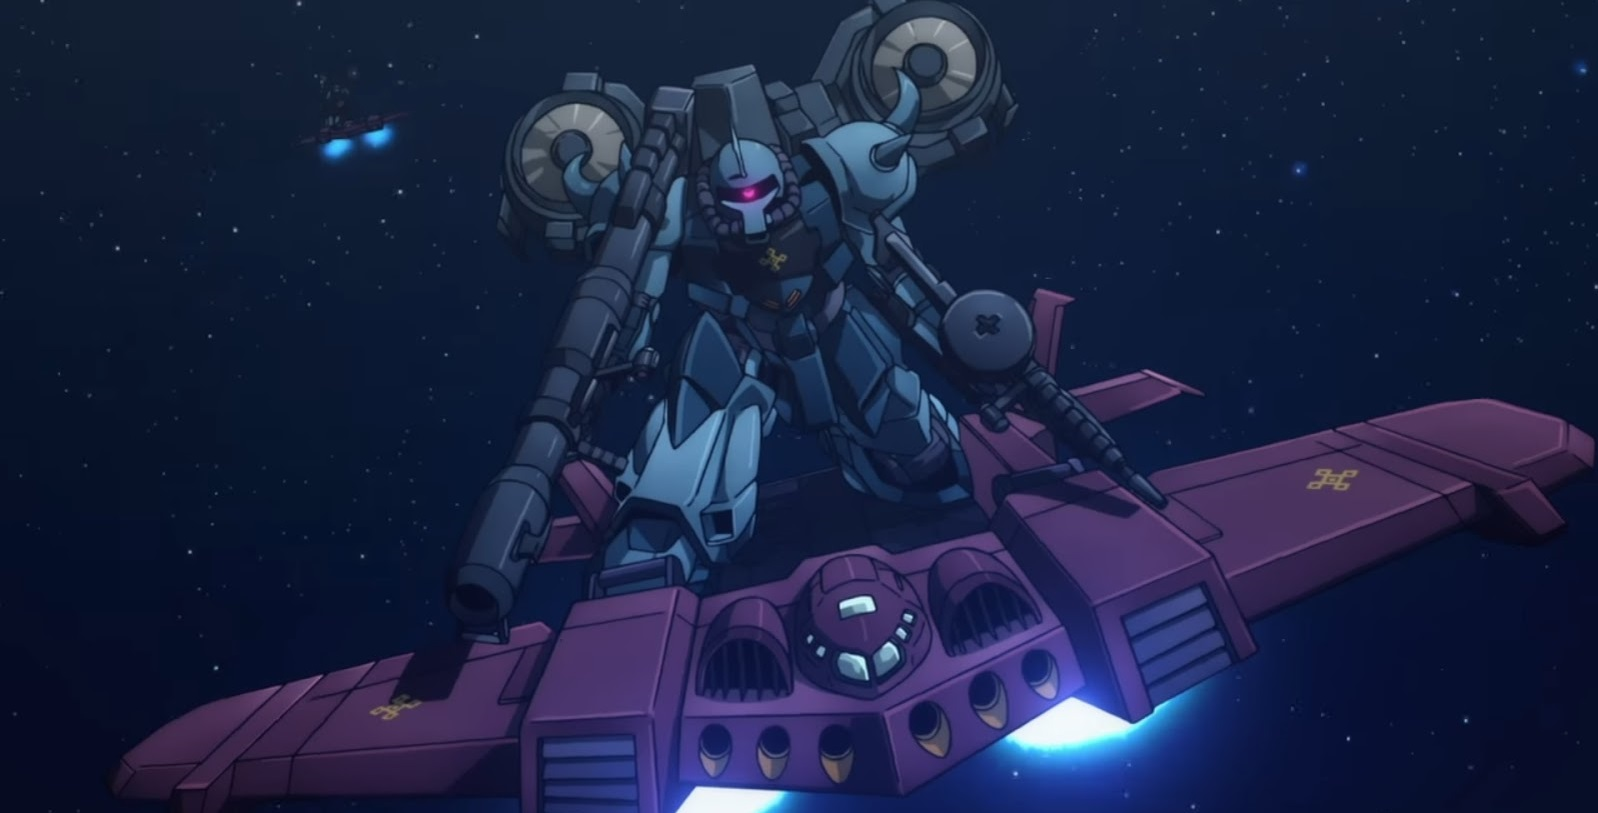 Get jazzed up for Anime NYC's Gundam Thunderbolt events screenshot